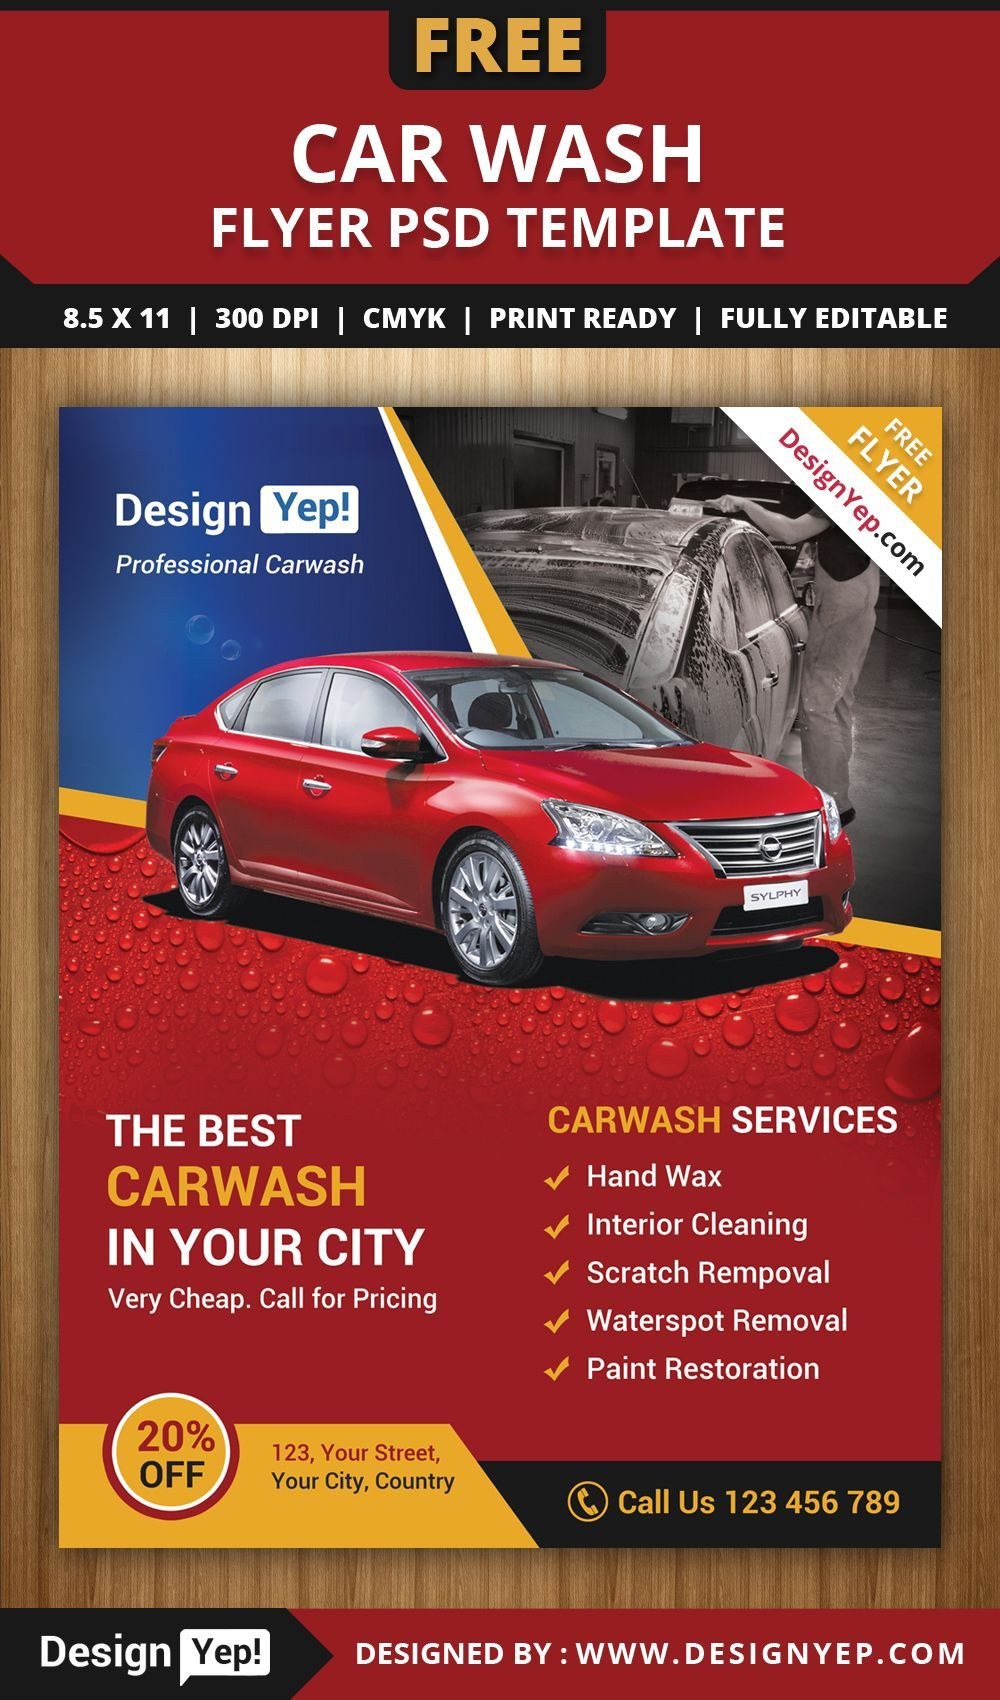 001 Imposing Car Wash Flyer Template Picture  Free Fundraiser DownloadFull